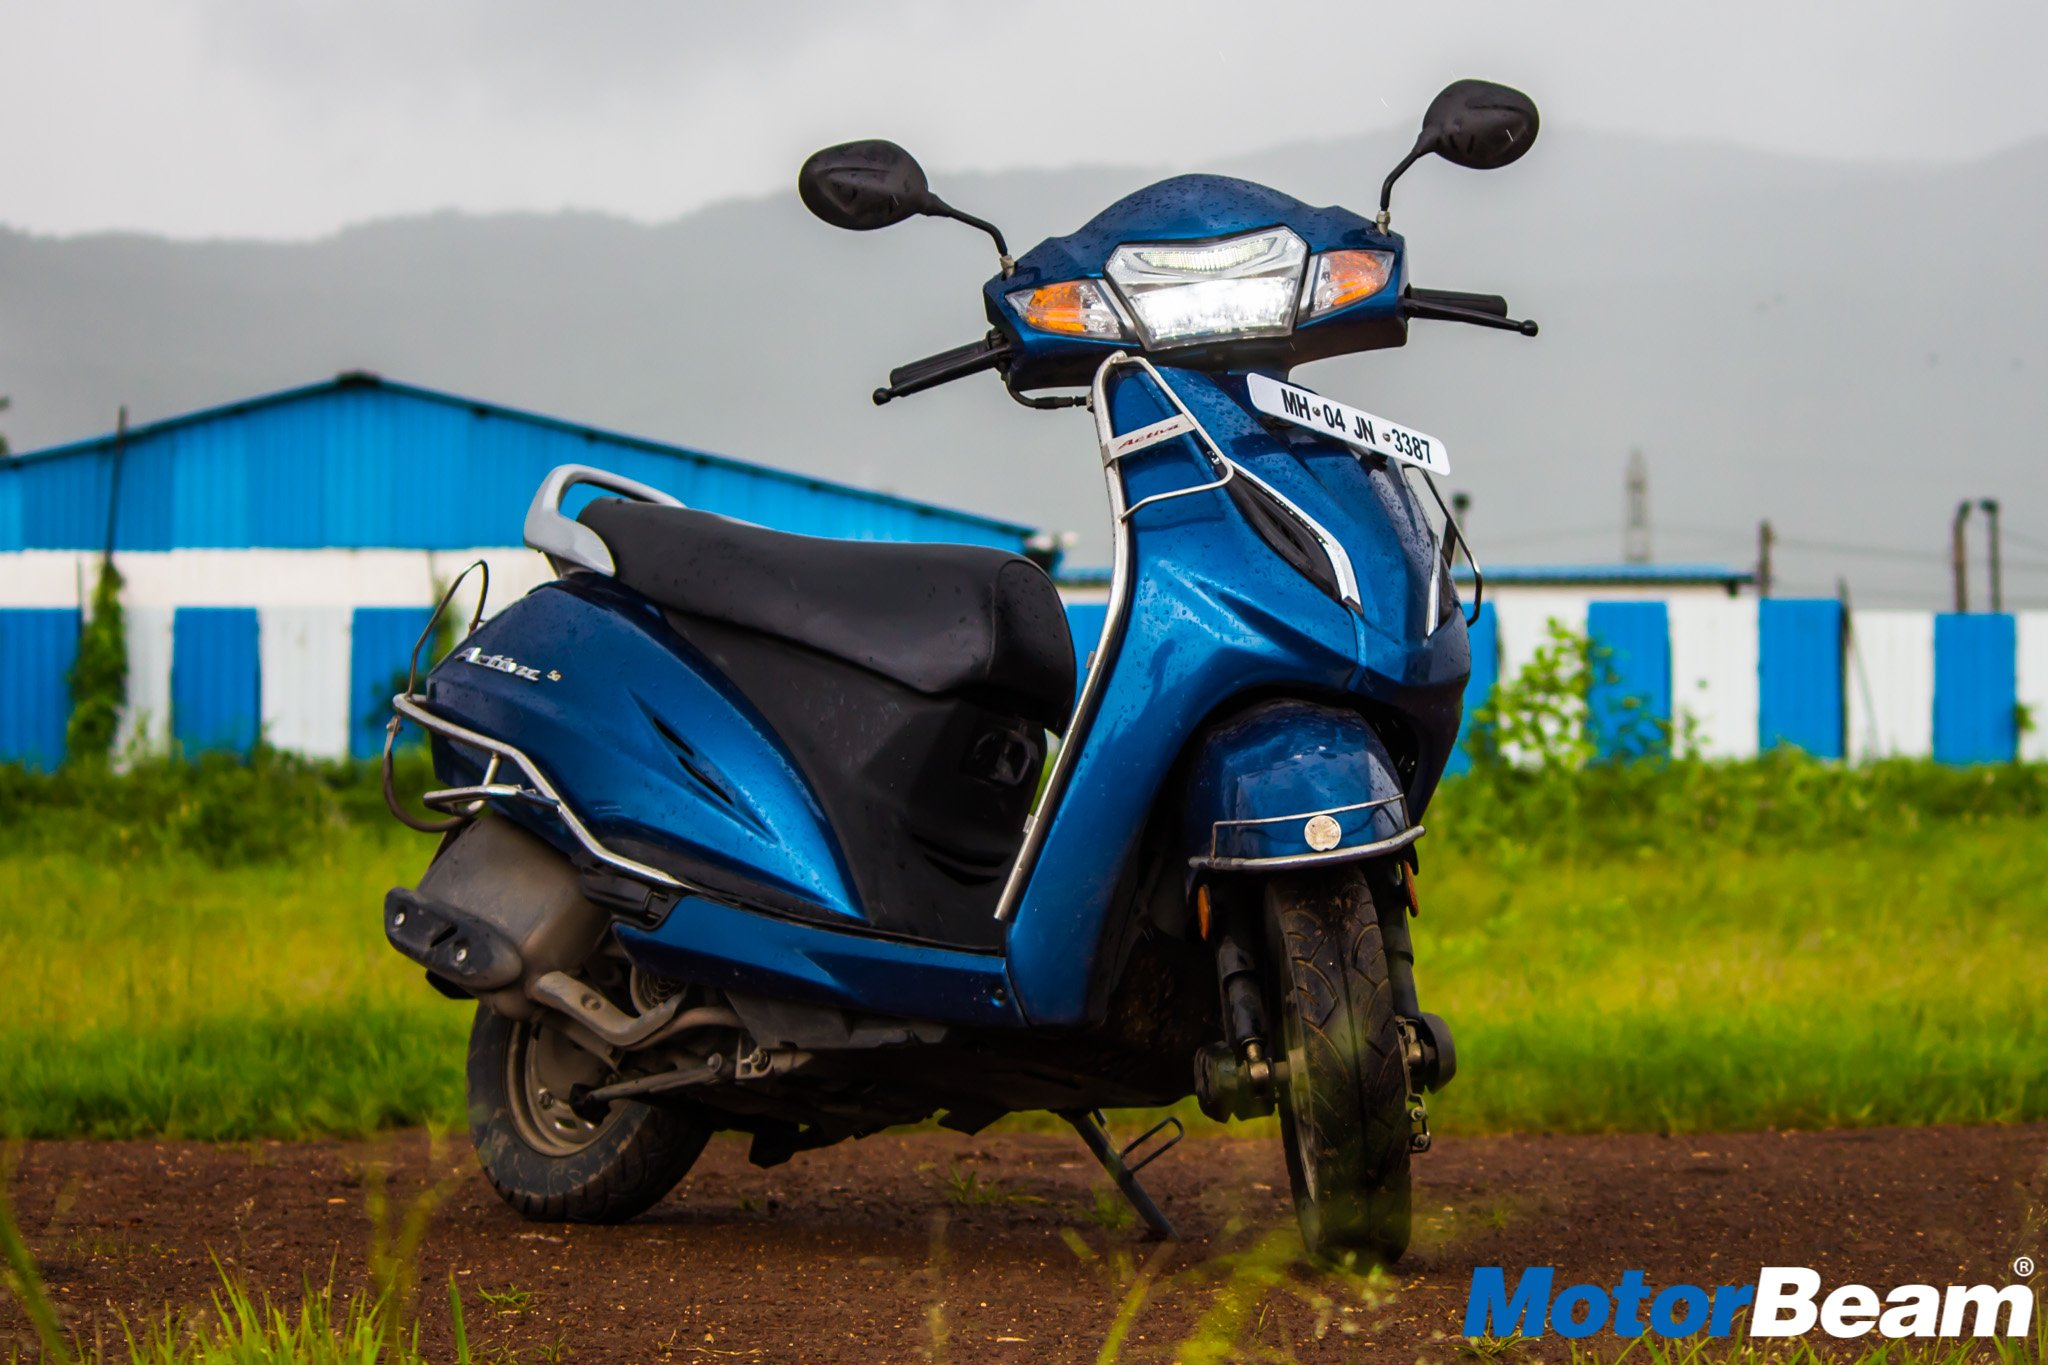 2018 Honda Activa 5G Road Test Report